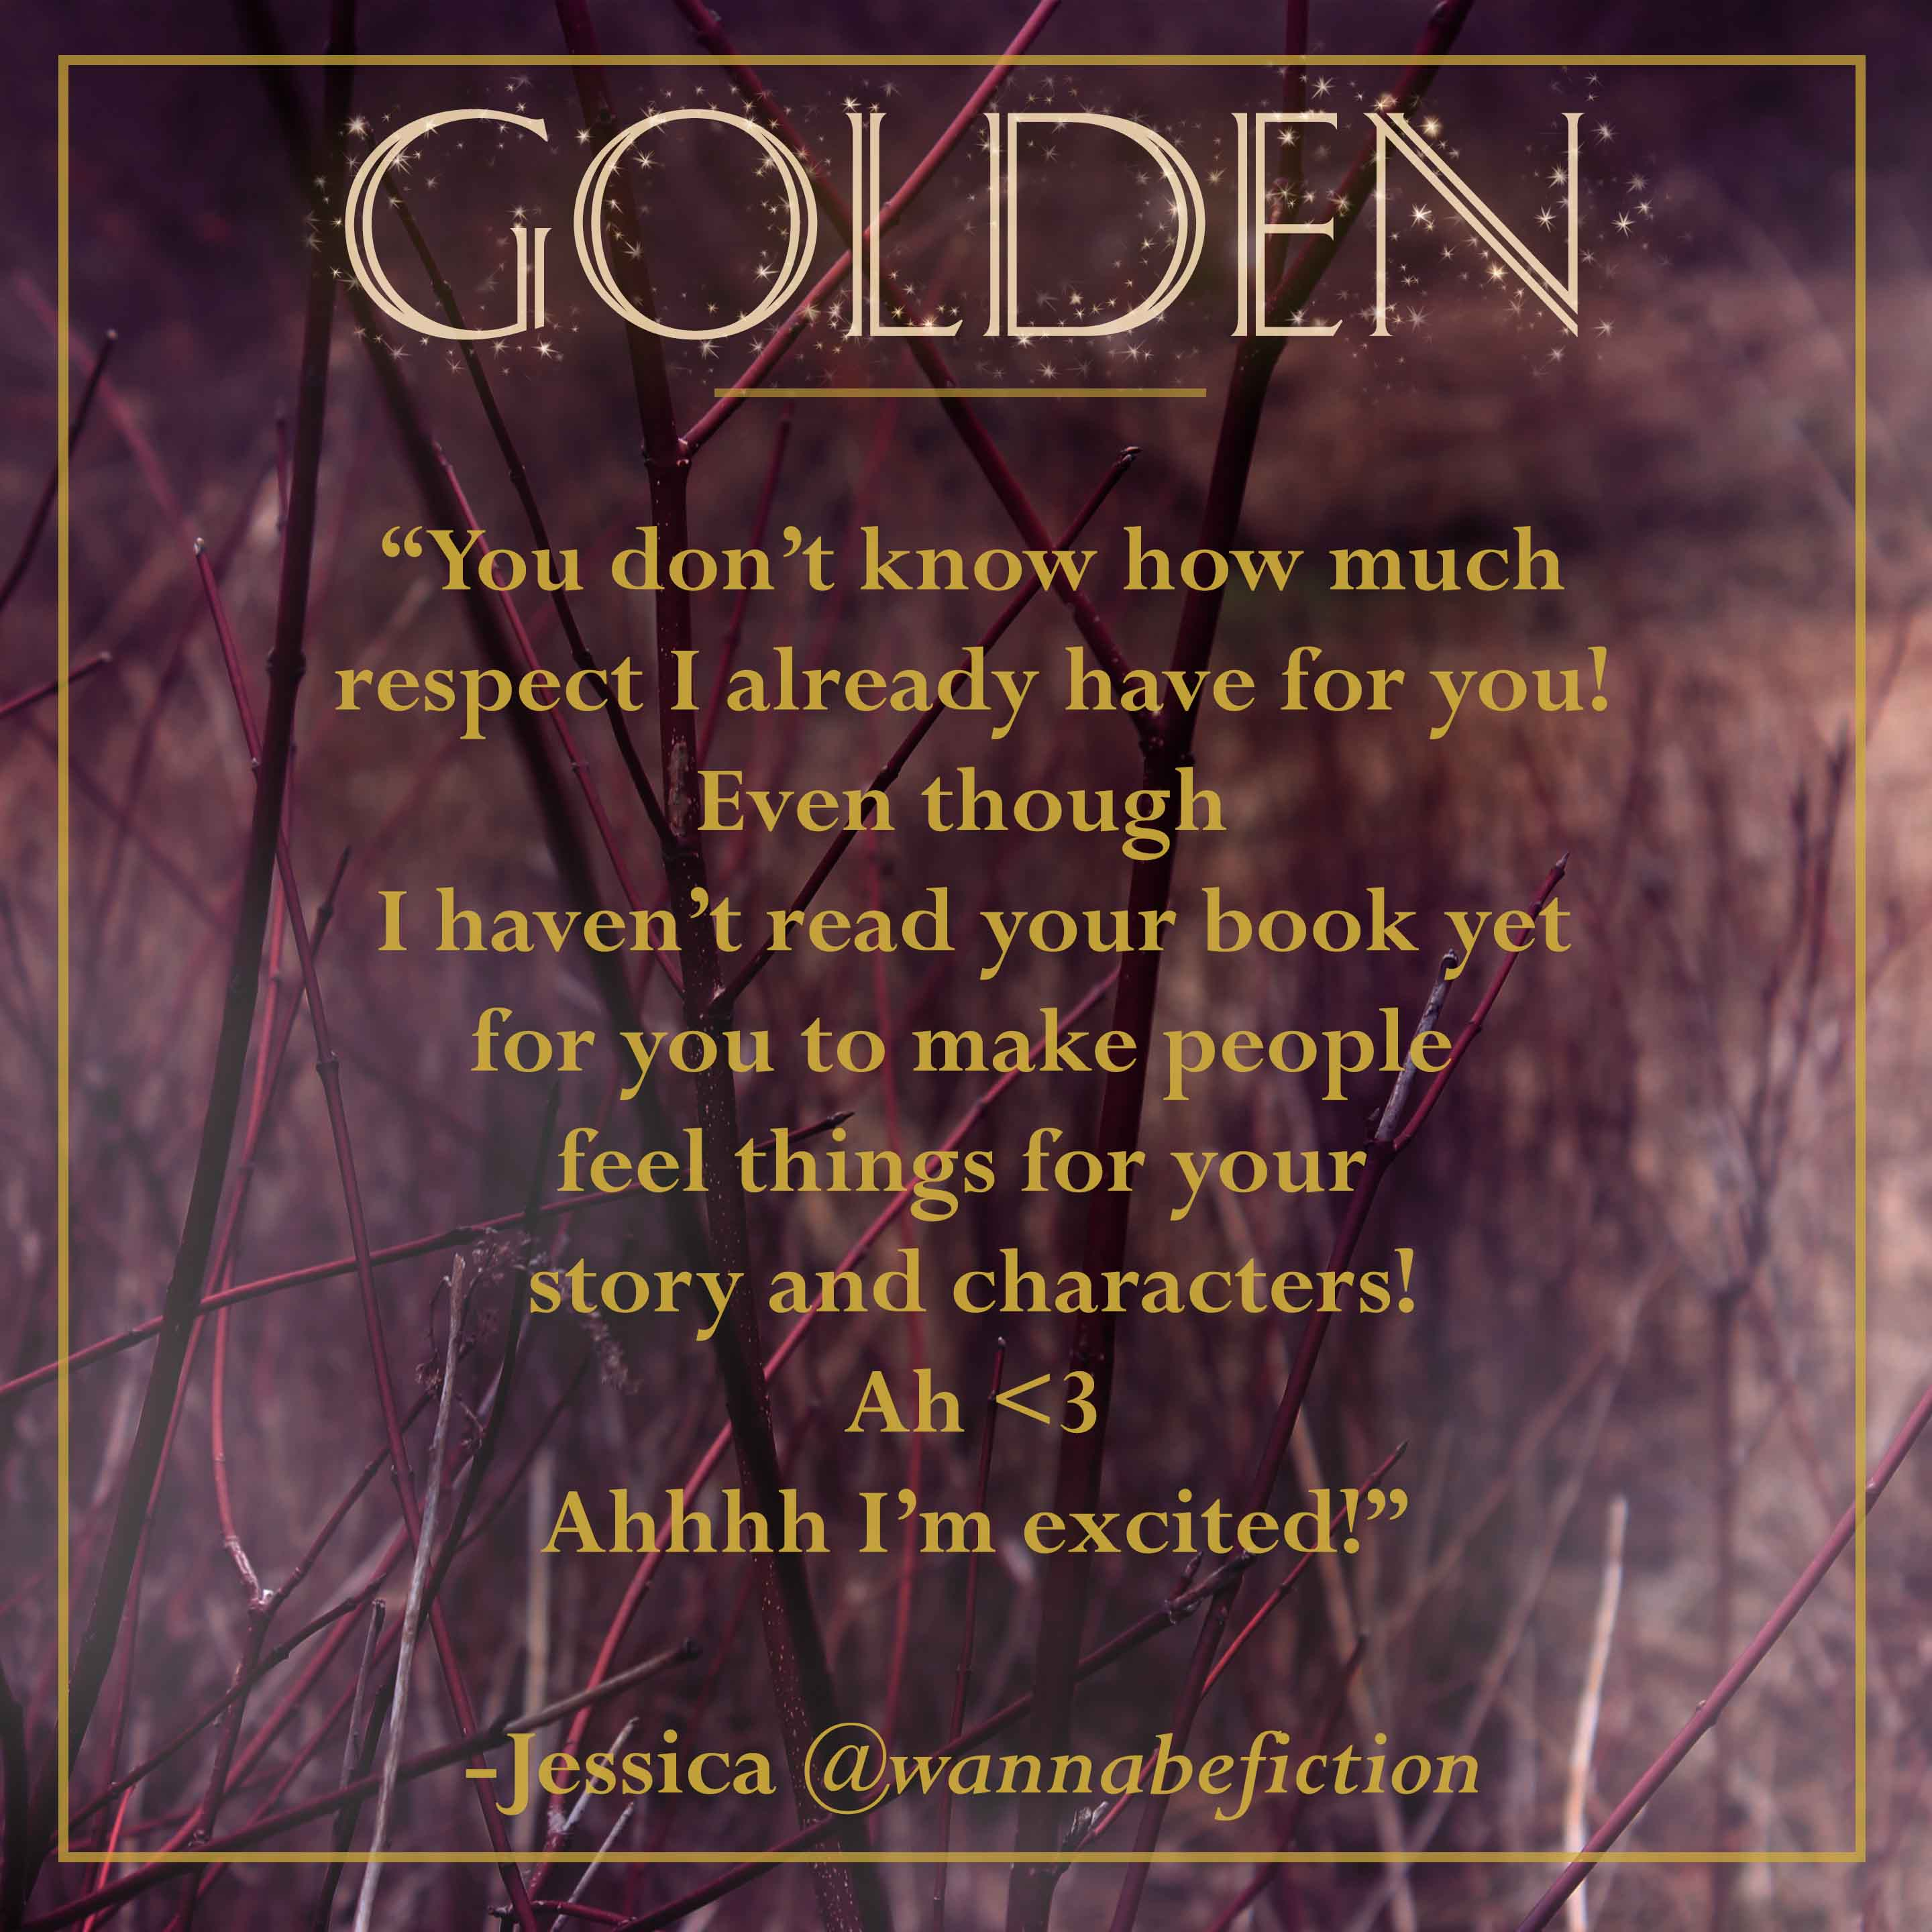 golden fan quote-jessica wannabefiction